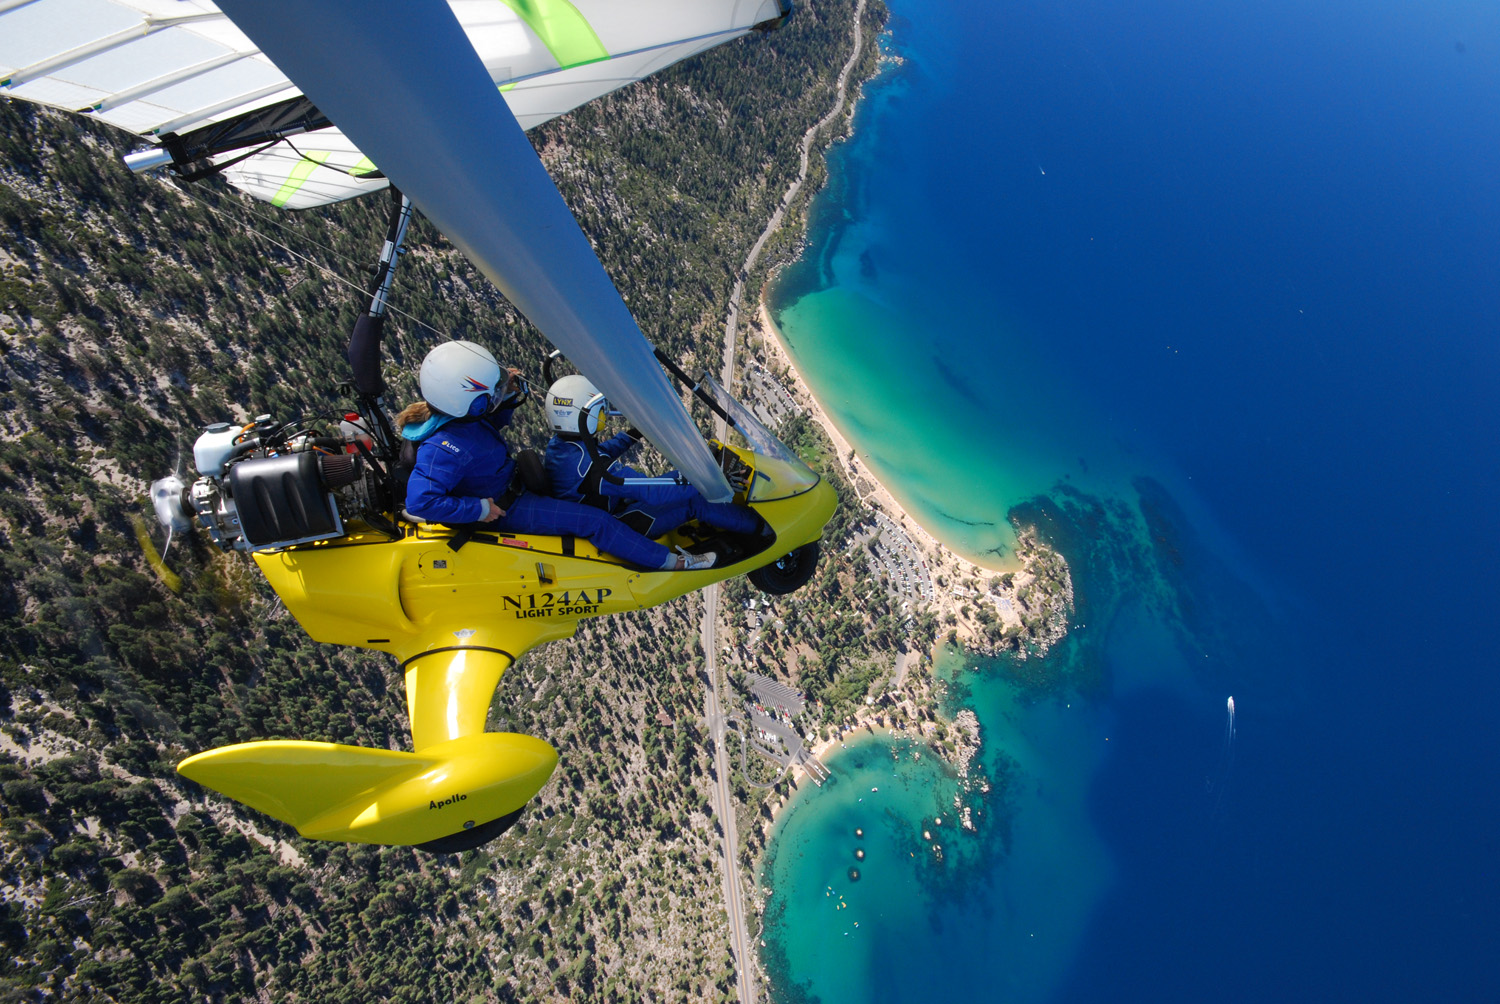 Student and Instructor in powered hang glider above Sand Harbor, Hang Gliding Tahoe